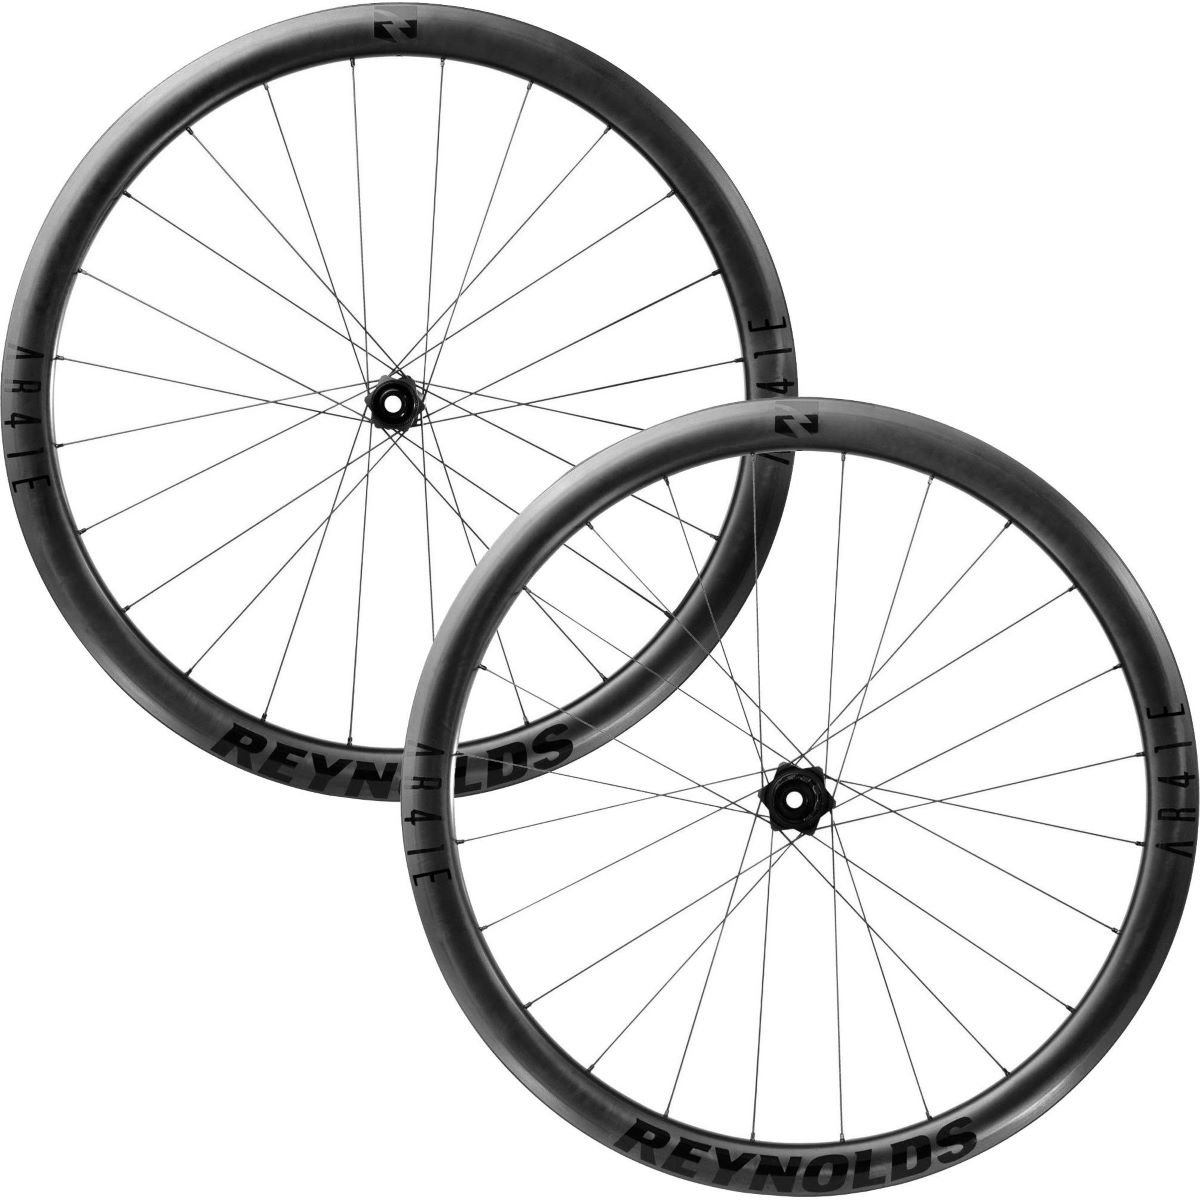 Reynolds Reynolds ARE 41 Carbon Road Wheelset   Wheel Sets